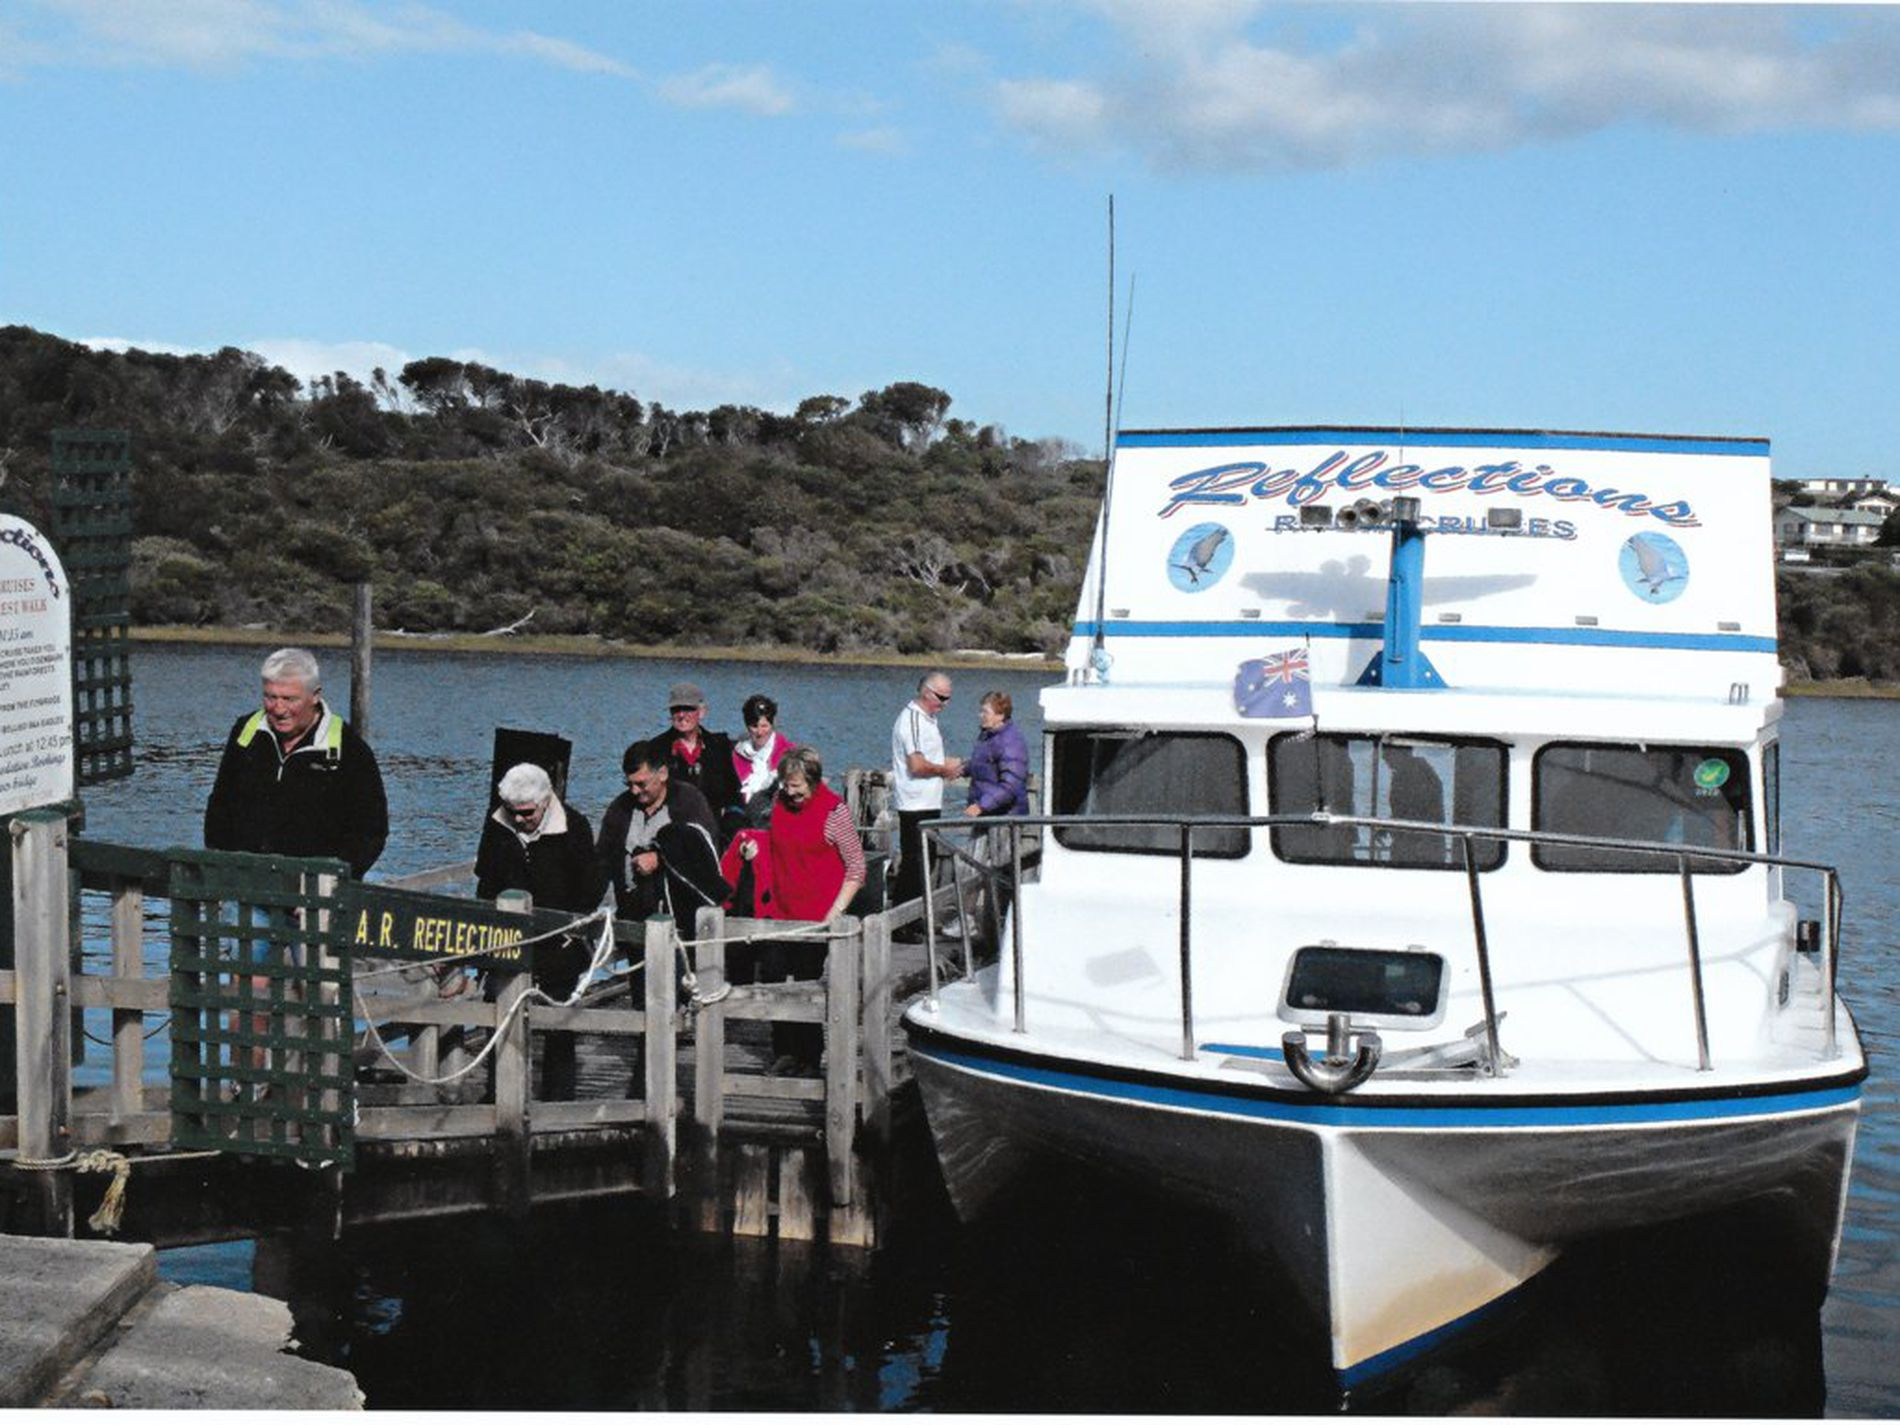 Arthur River Holiday Units, Shop & River Cruise Package